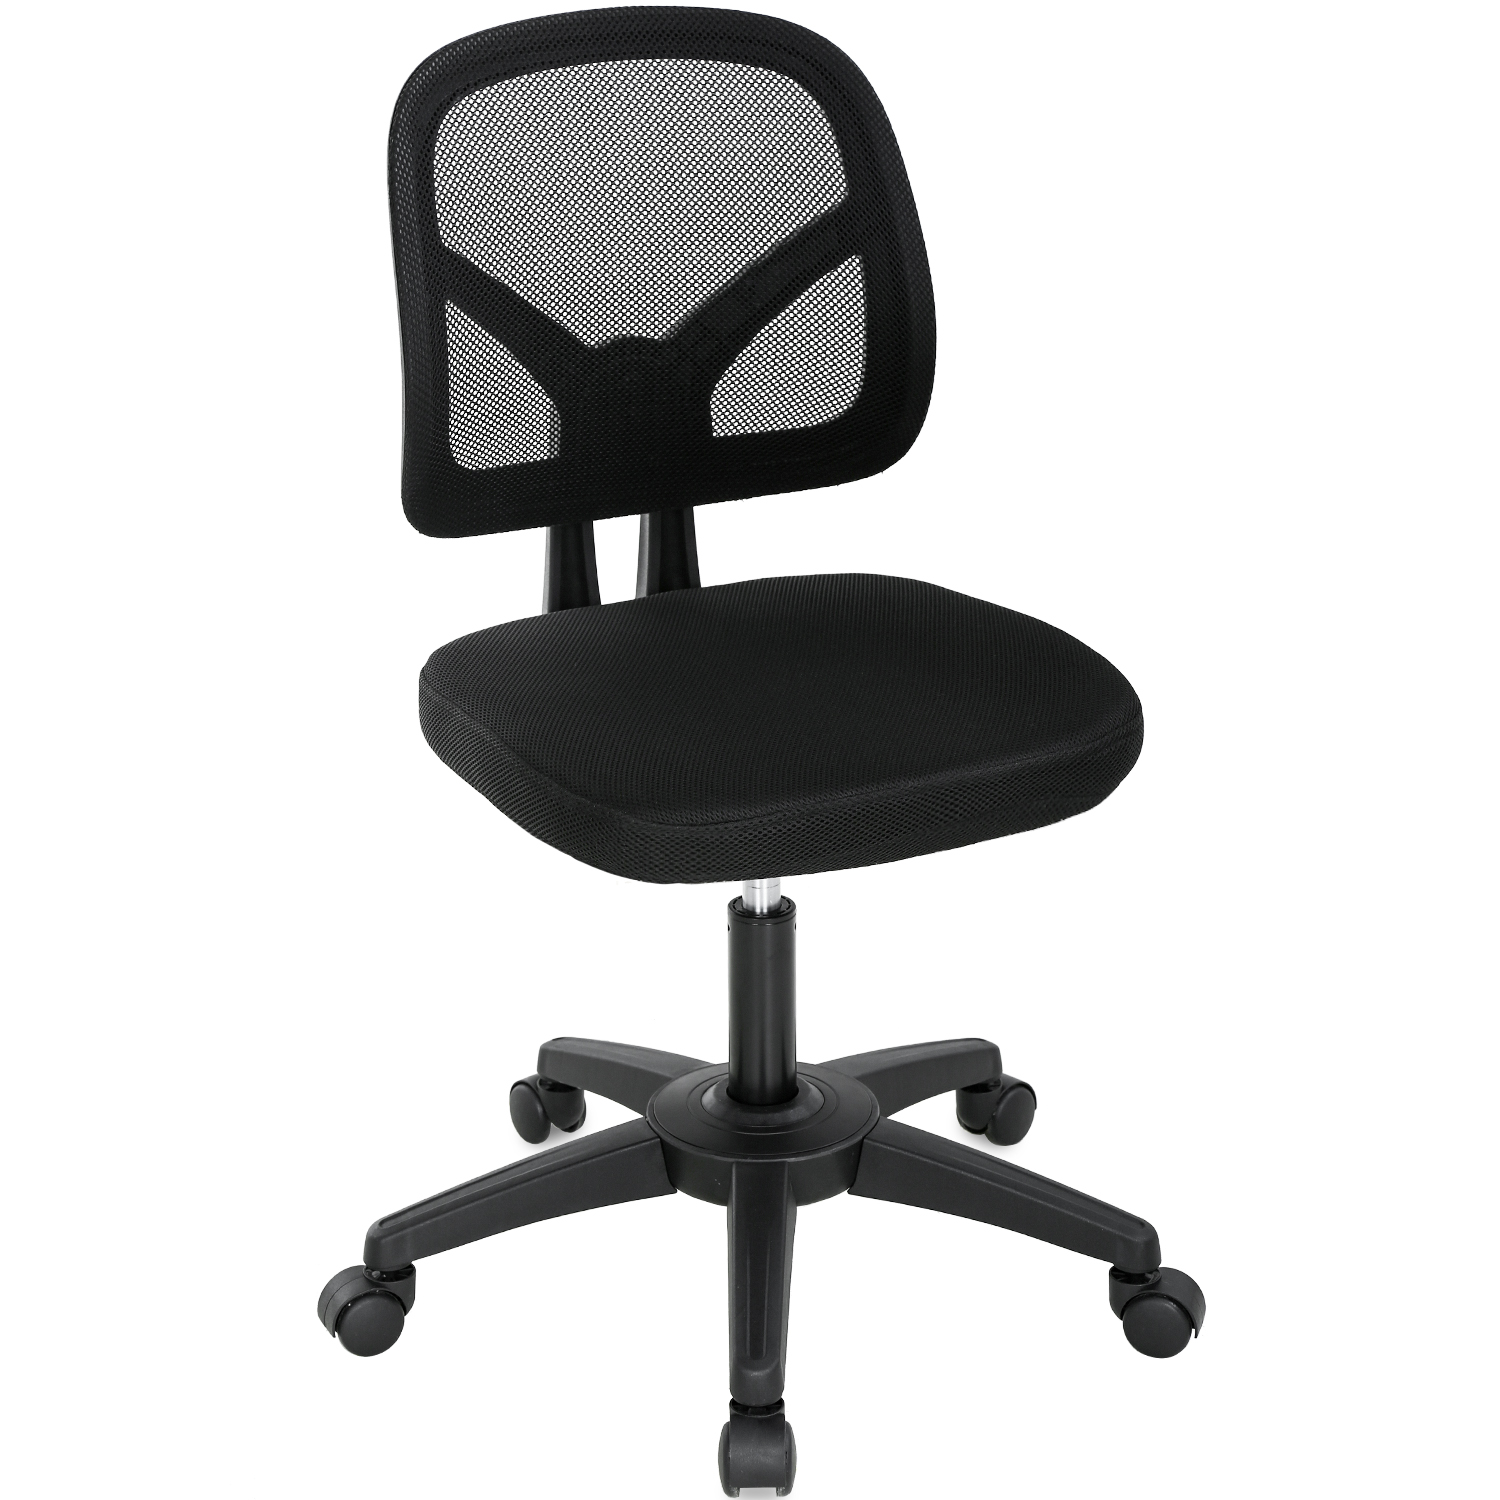 Home Office Chair Ergonomic Desk Chair Mesh Computer Chair With Lumbar Support Swivel Rolling Executive Adjustable Task Chair For Women Adults Black Walmart Com Walmart Com